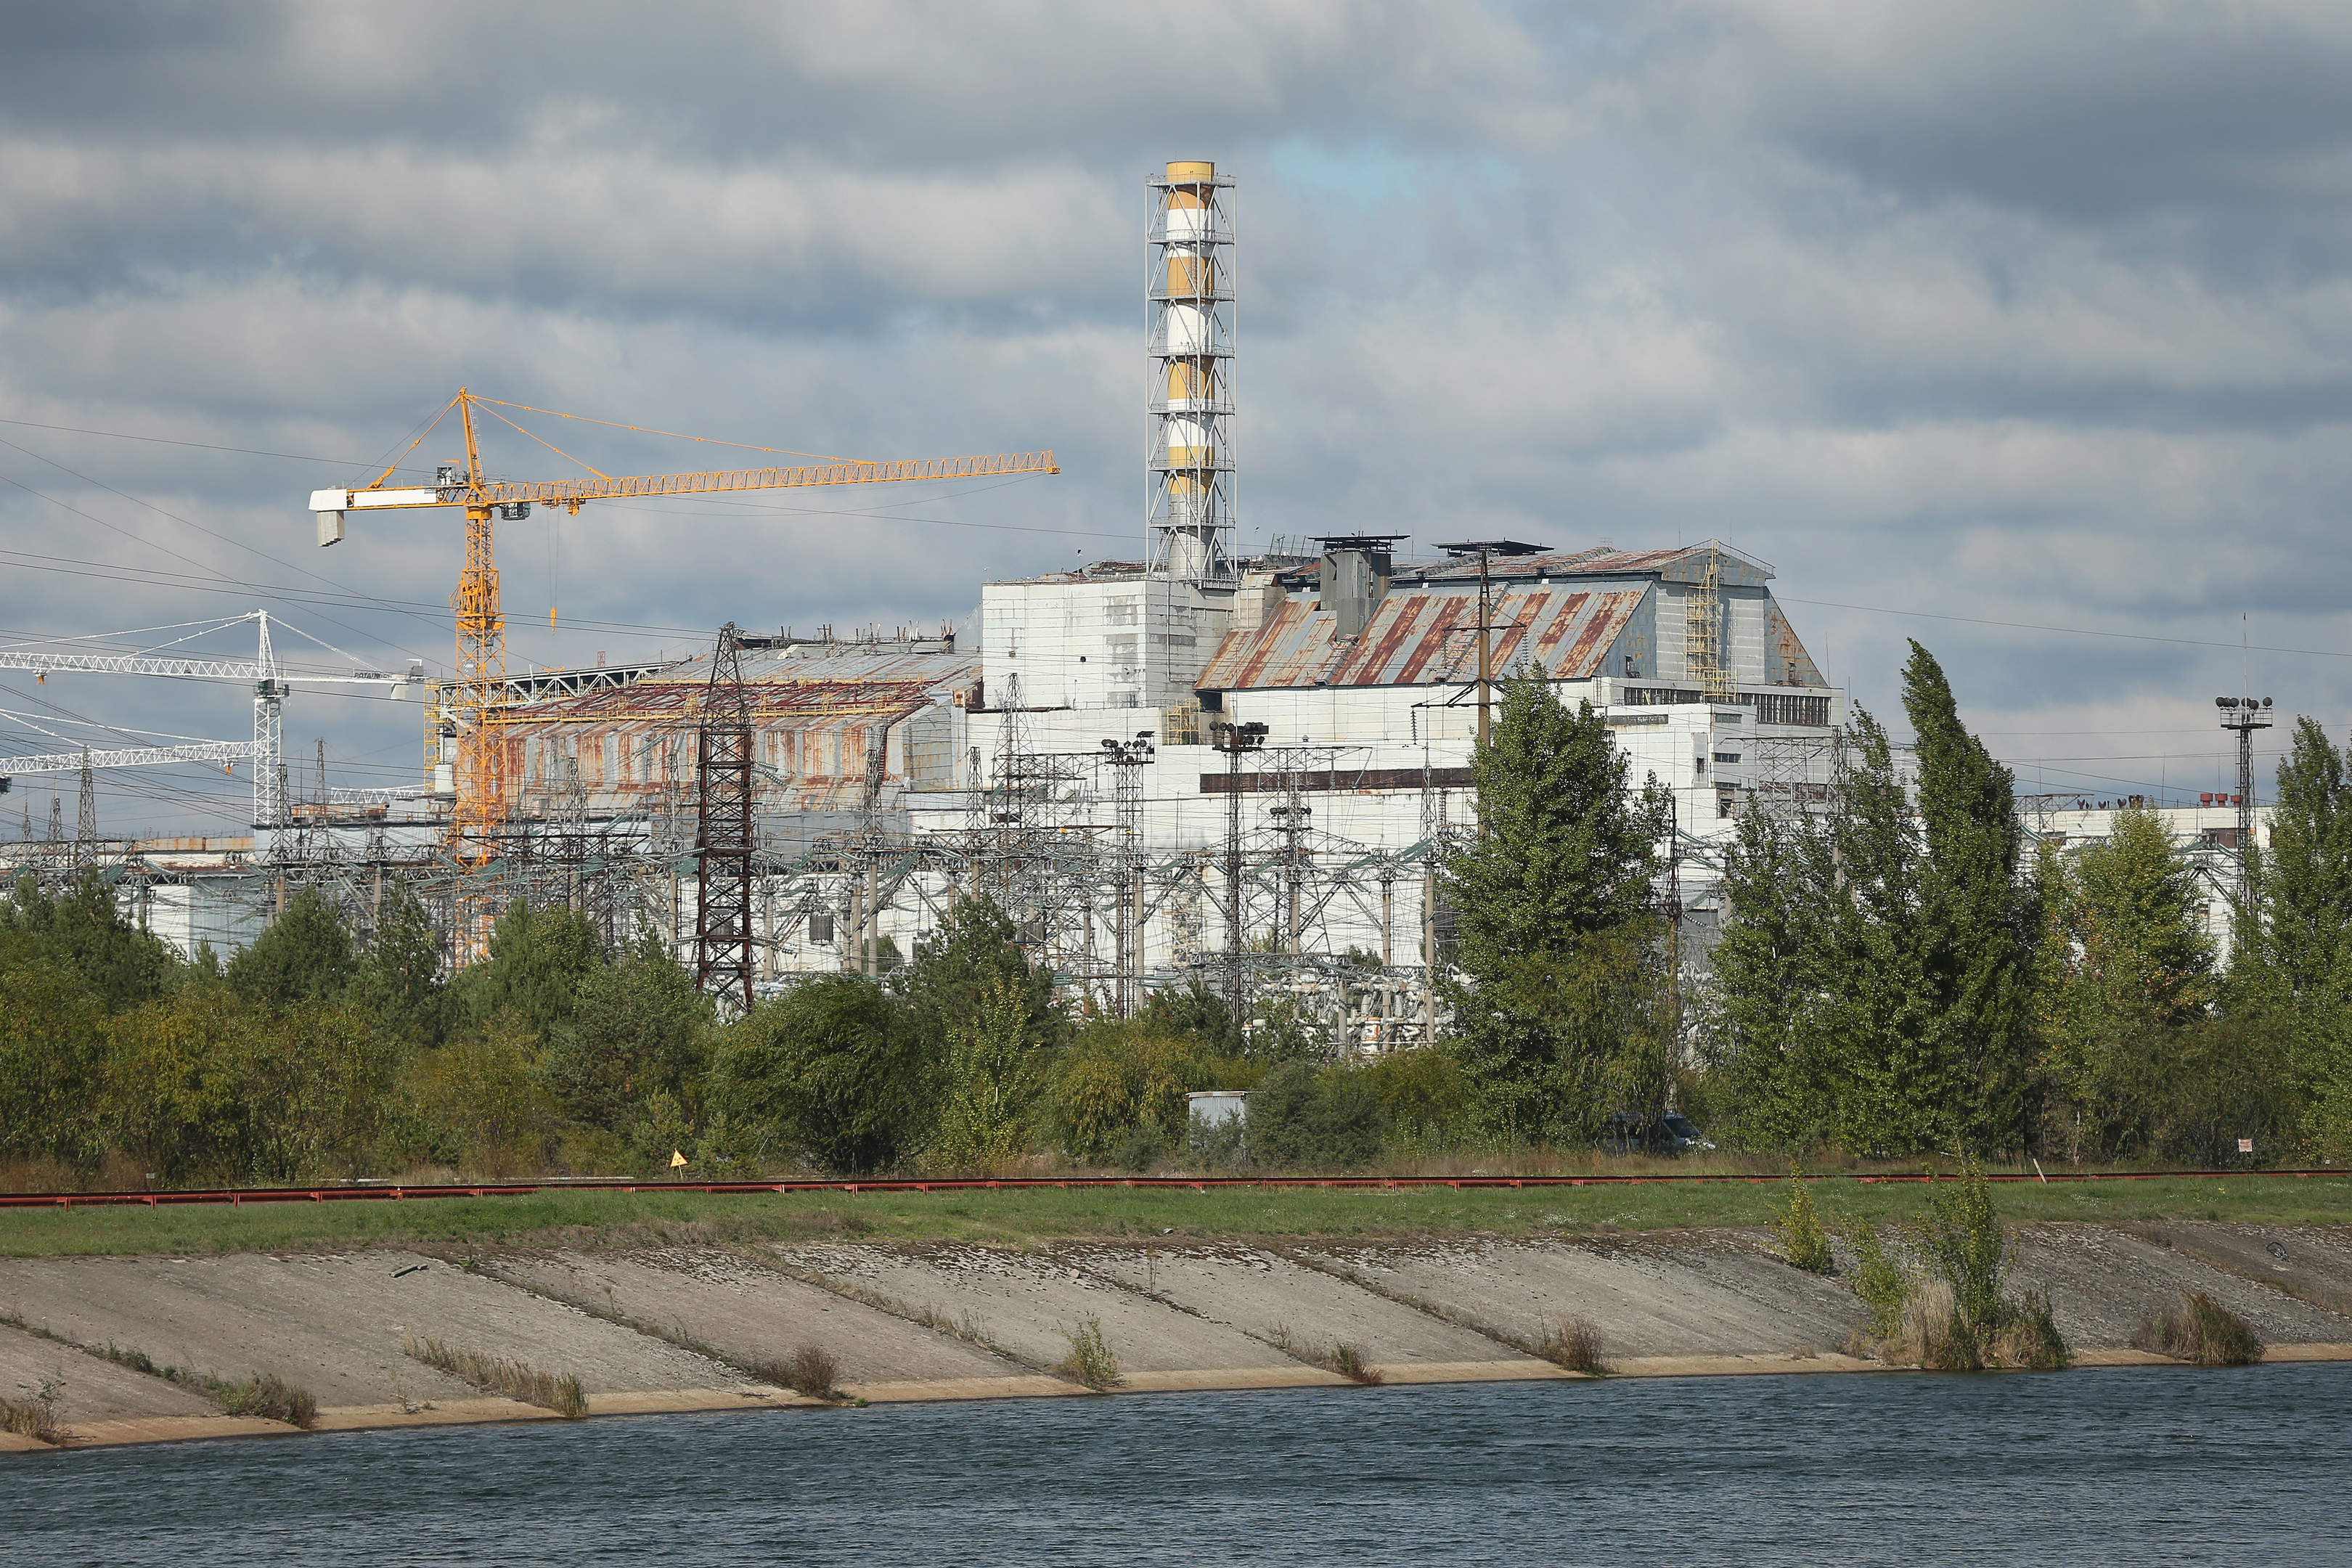 Chernobyl (Sean Gallup/Getty Images)